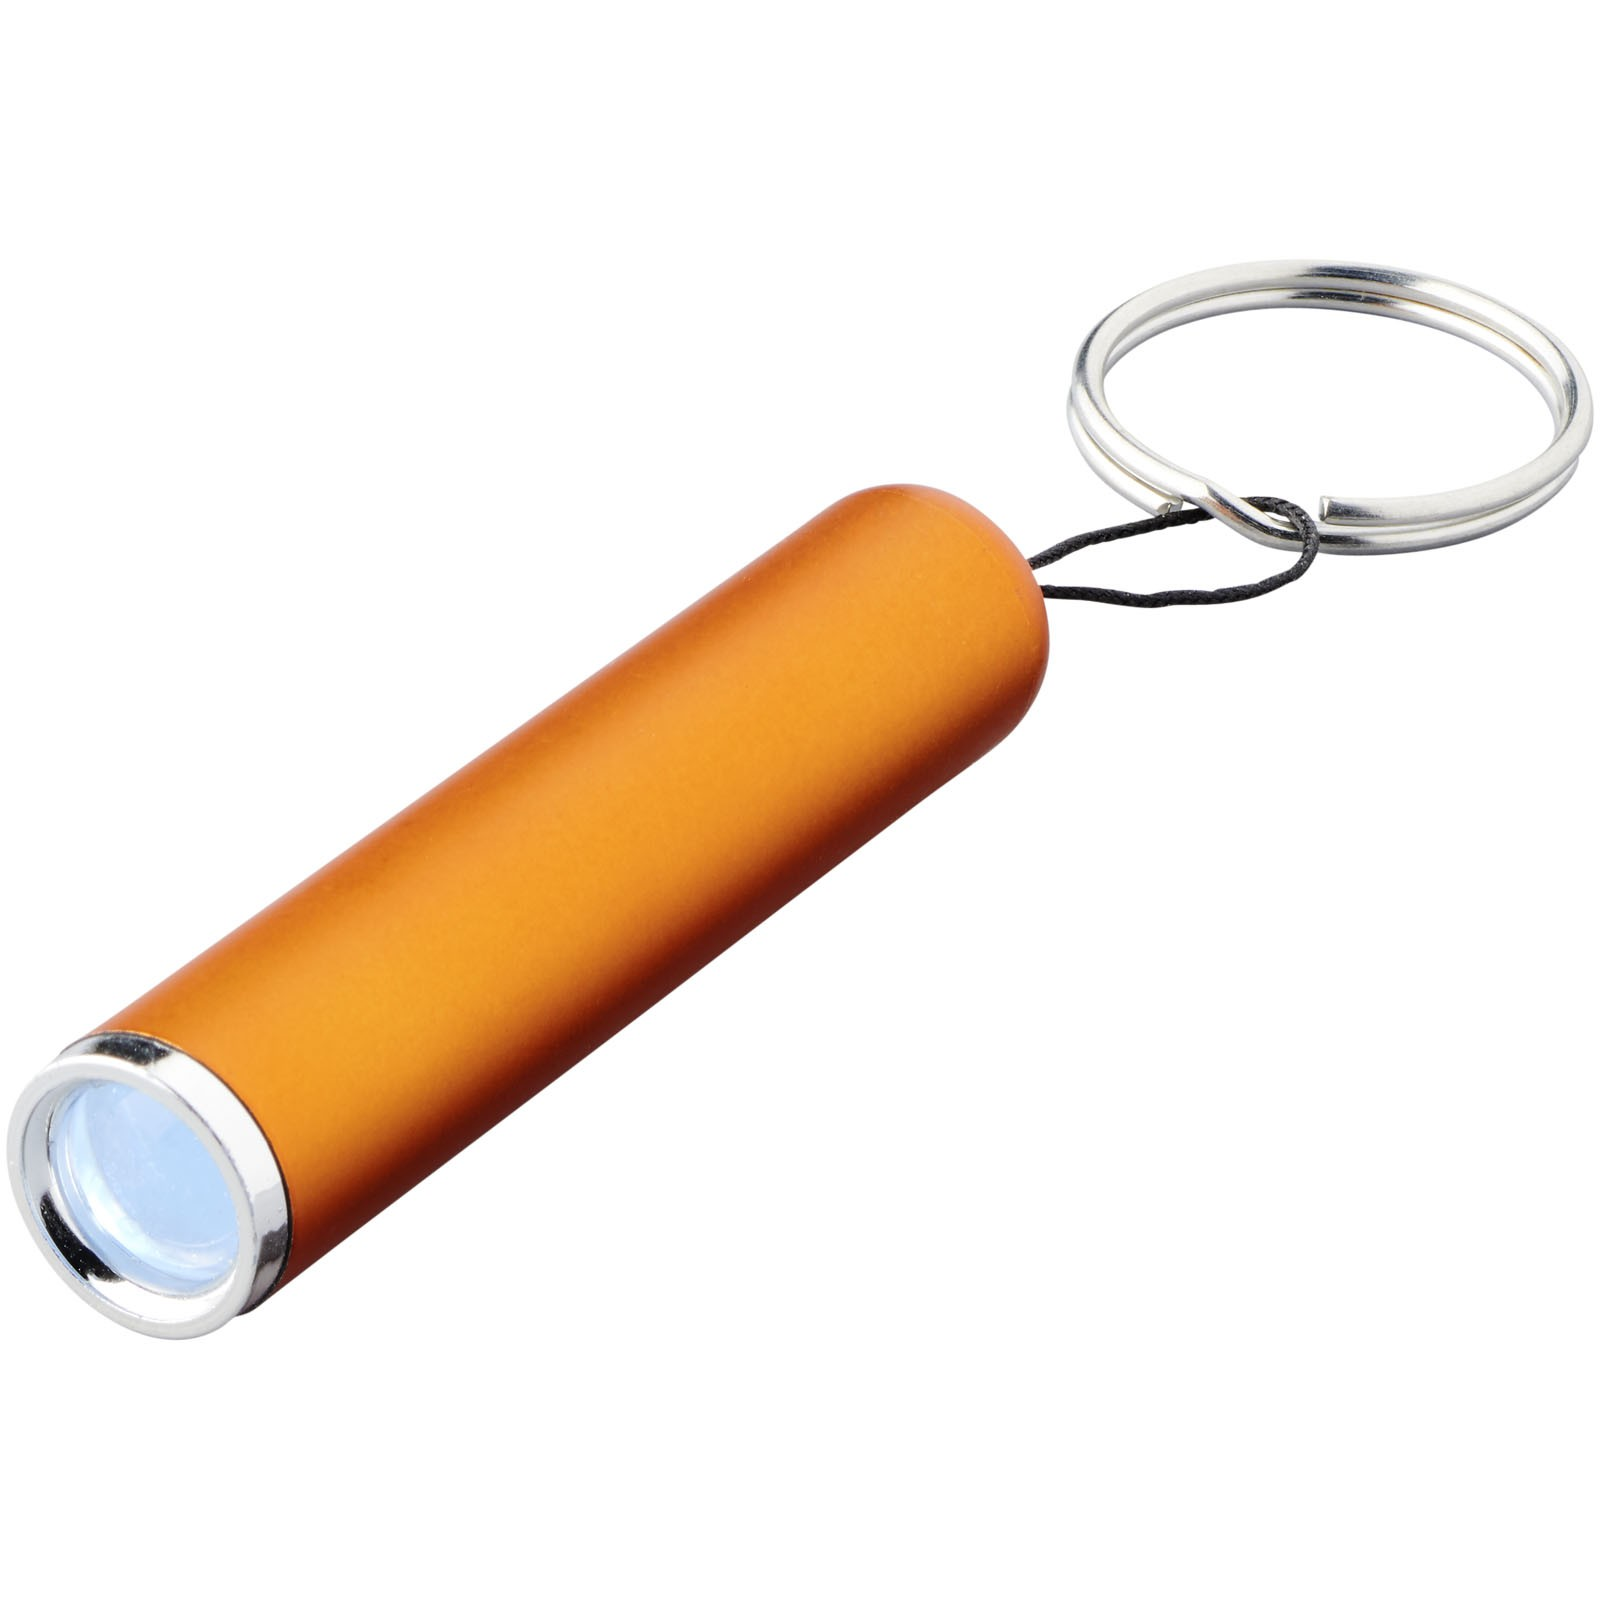 Pull light-up logo keylight - Orange